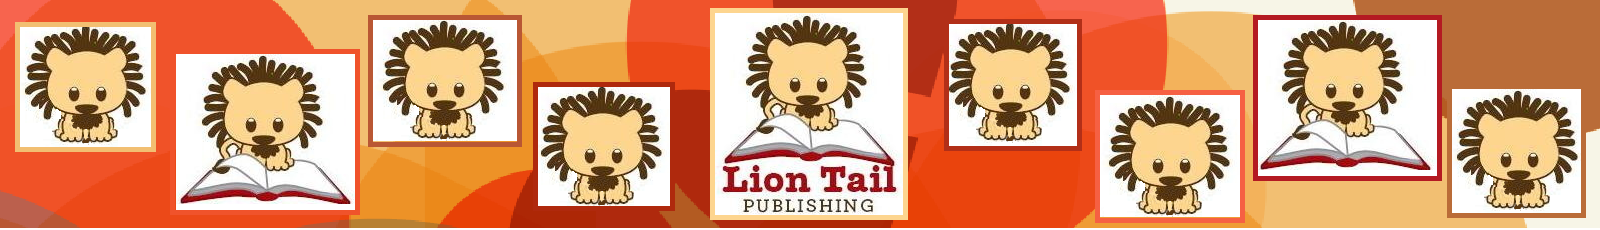 Lion Tail Publishing